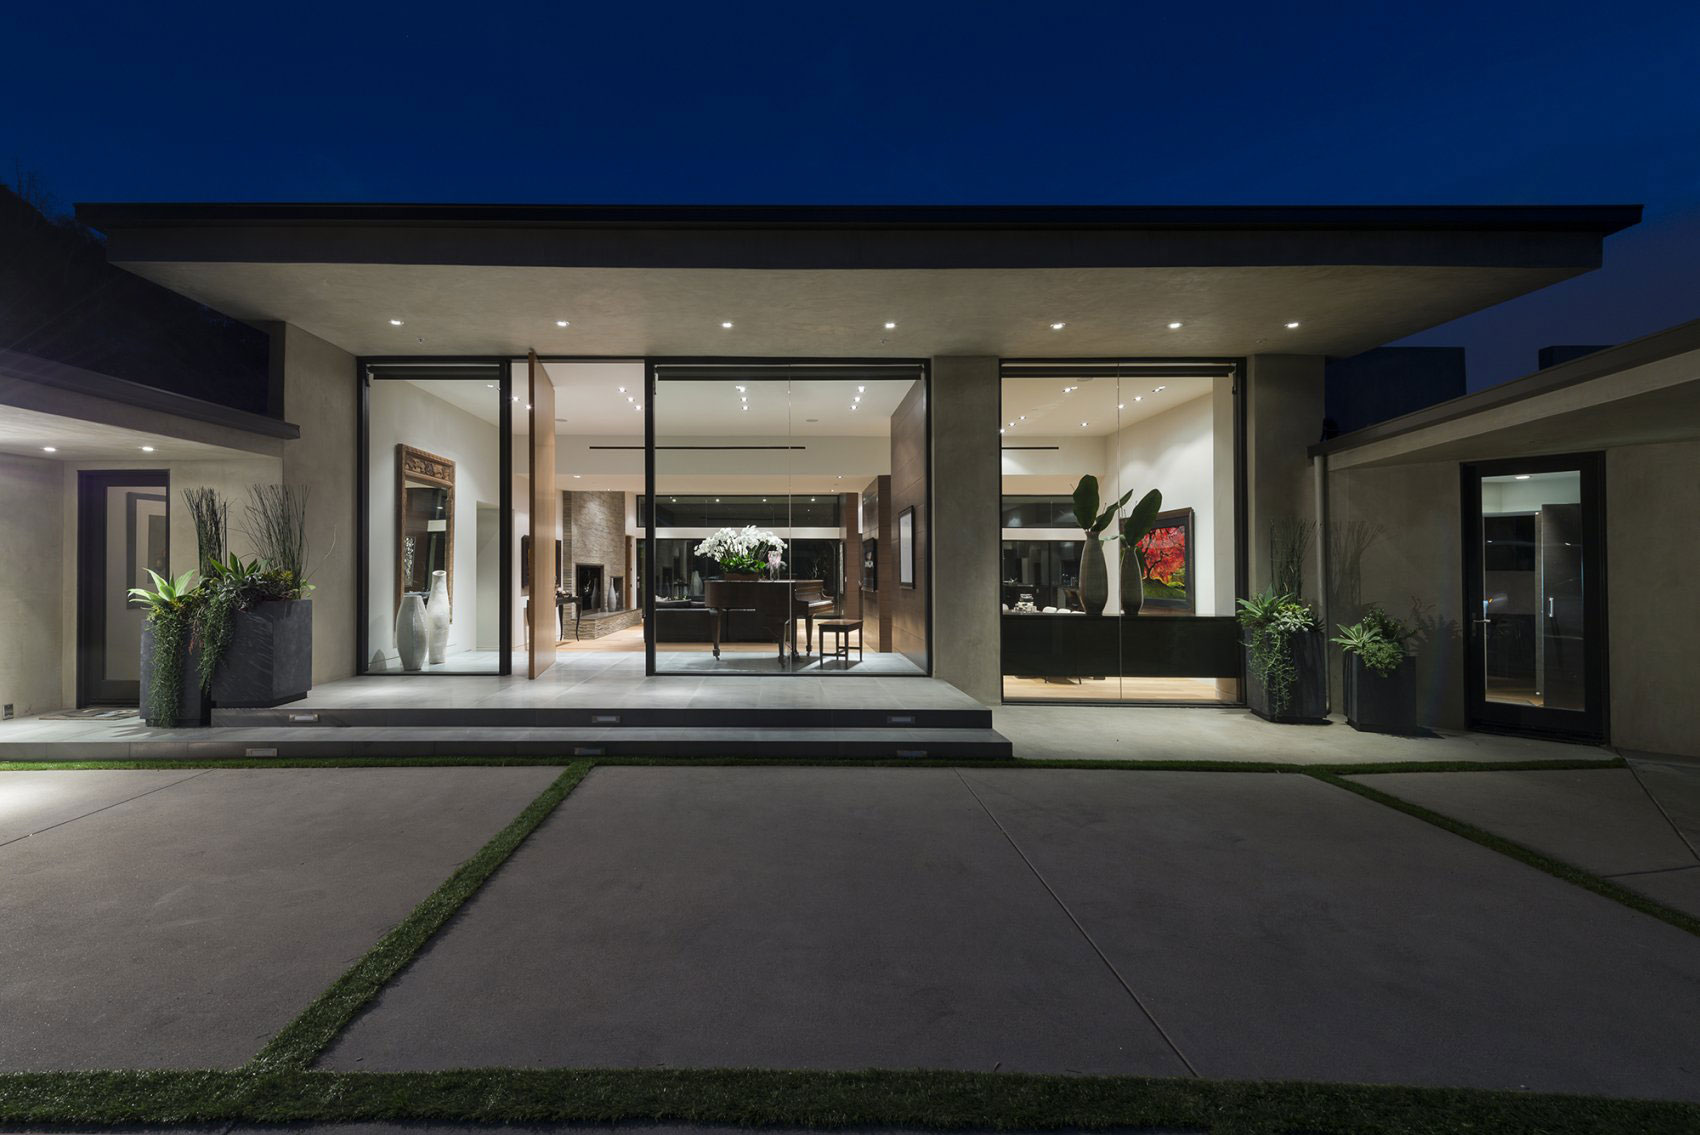 front-yard-large-modern-house-design-with-exposed-concrete-floor-tiles-and-glass-sliding-door-ideas